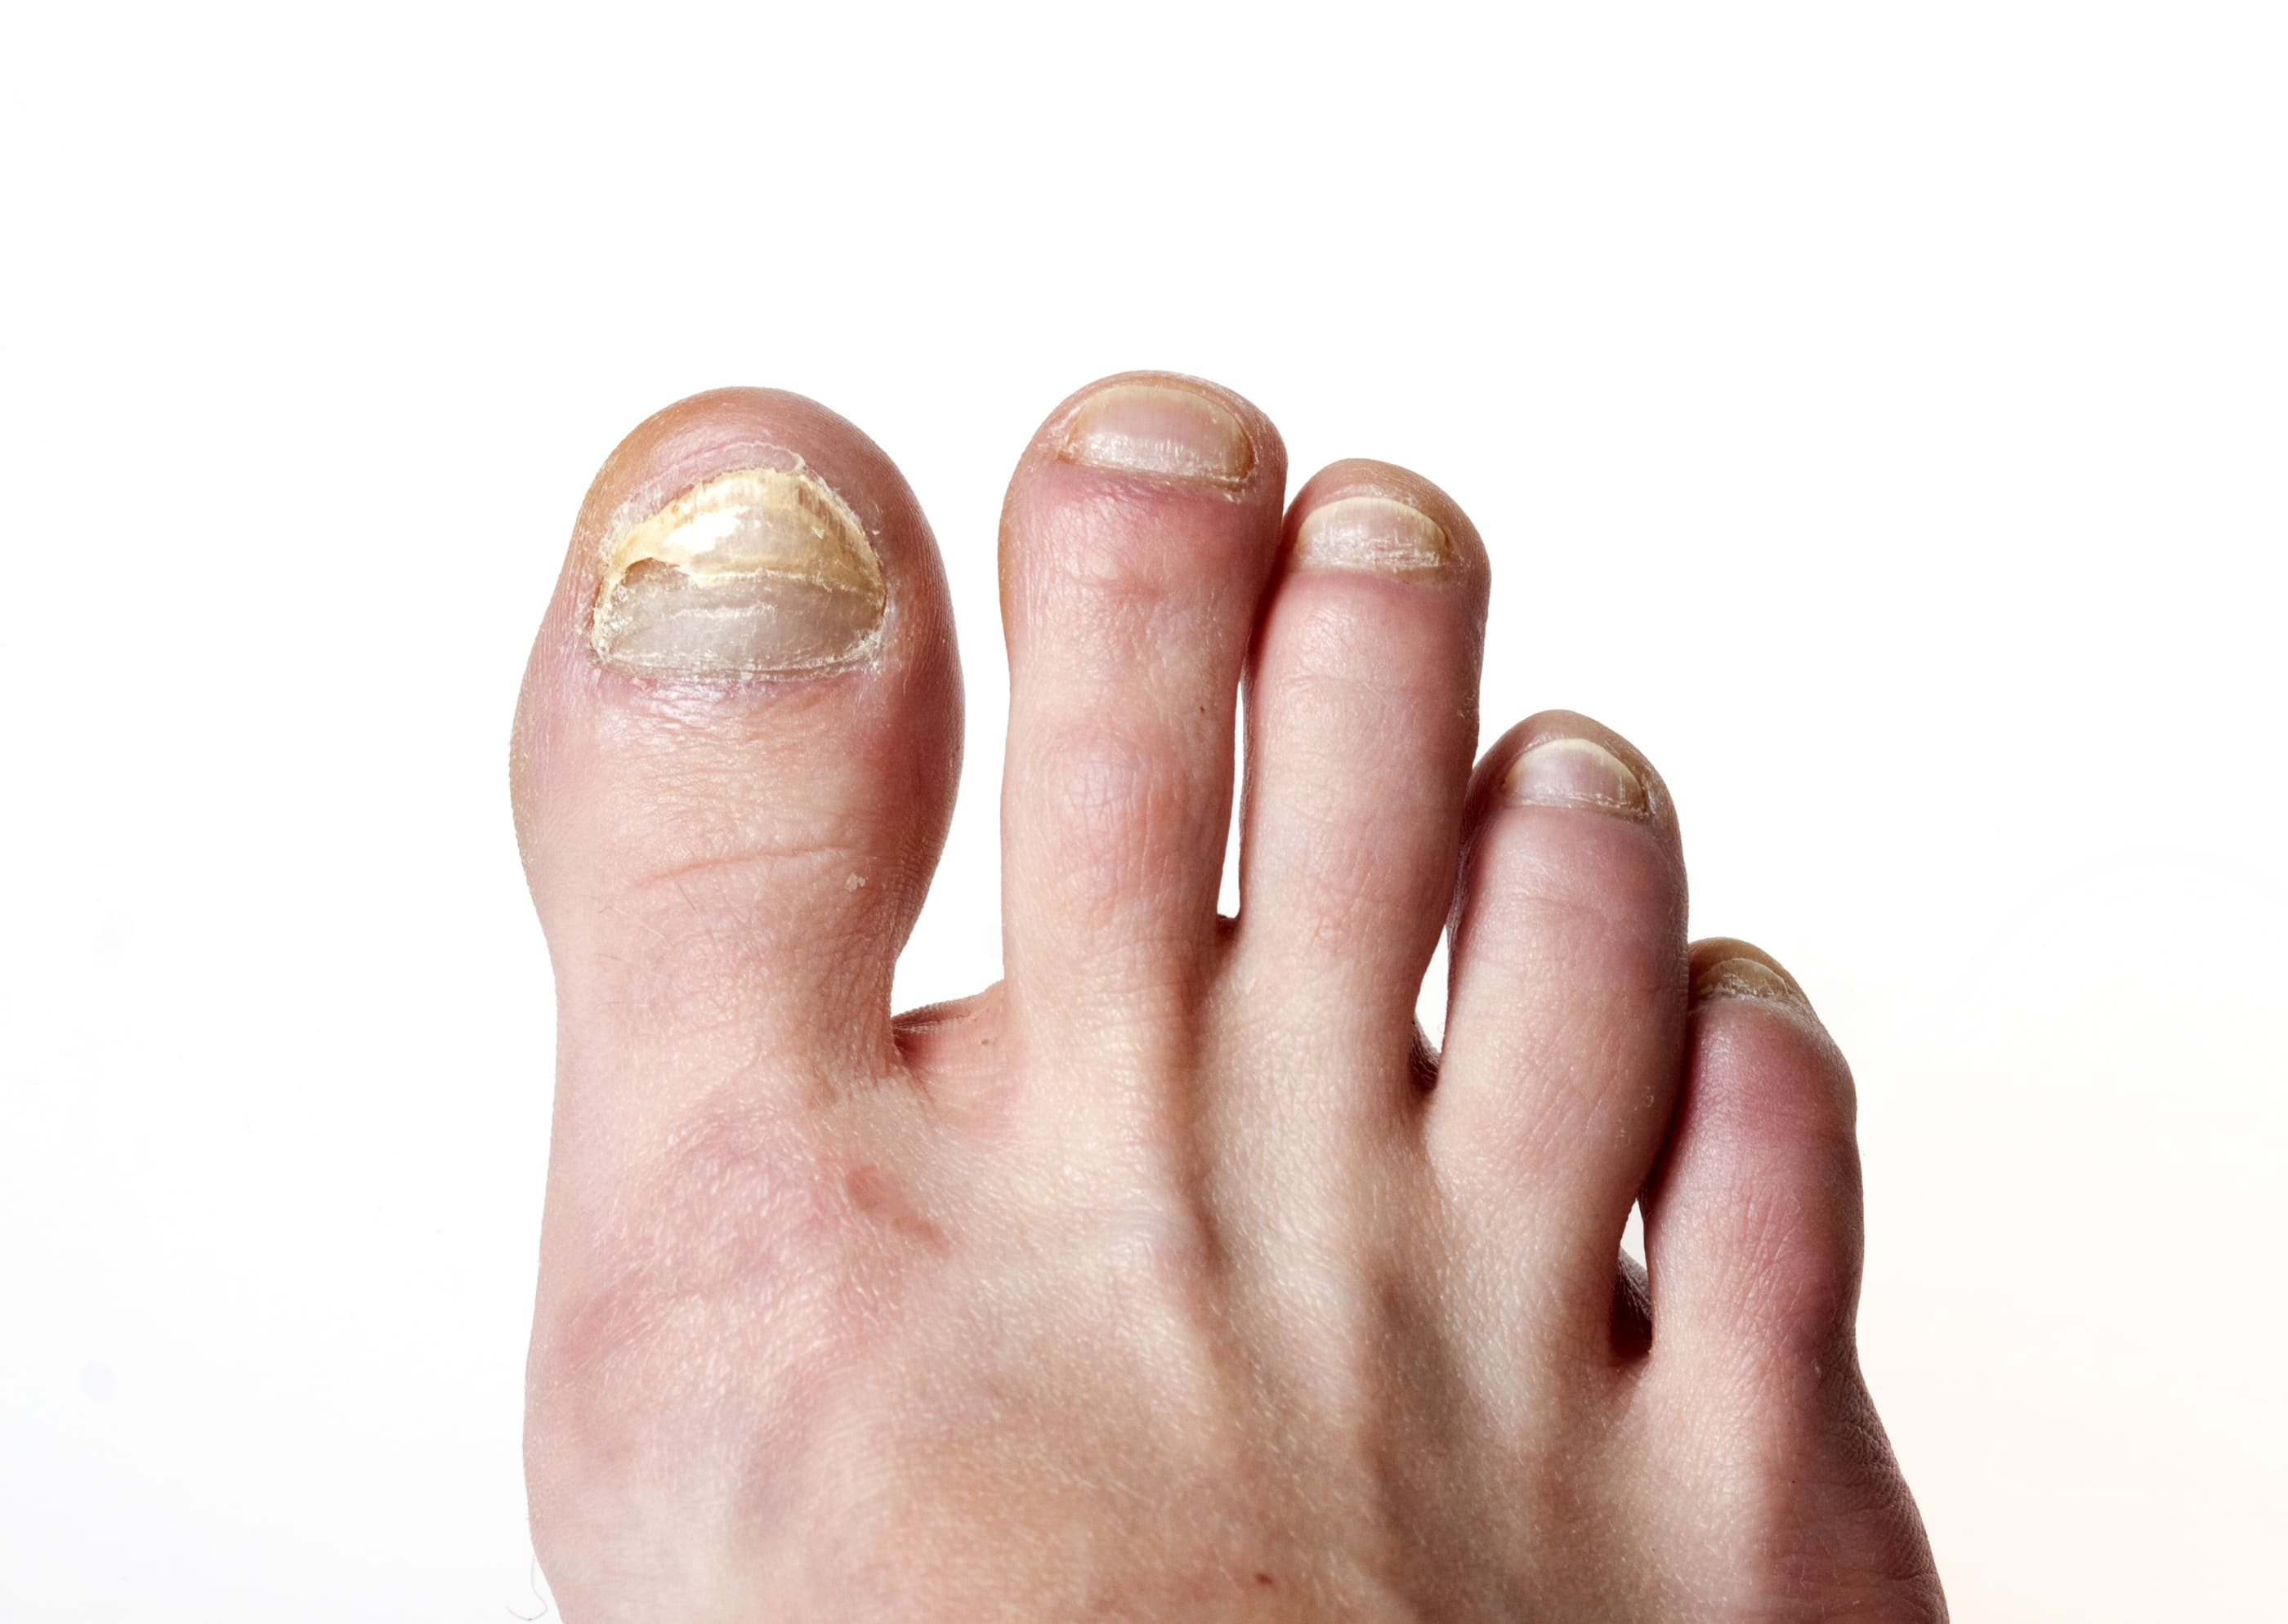 Tropical Climate Causing Fungal Nail